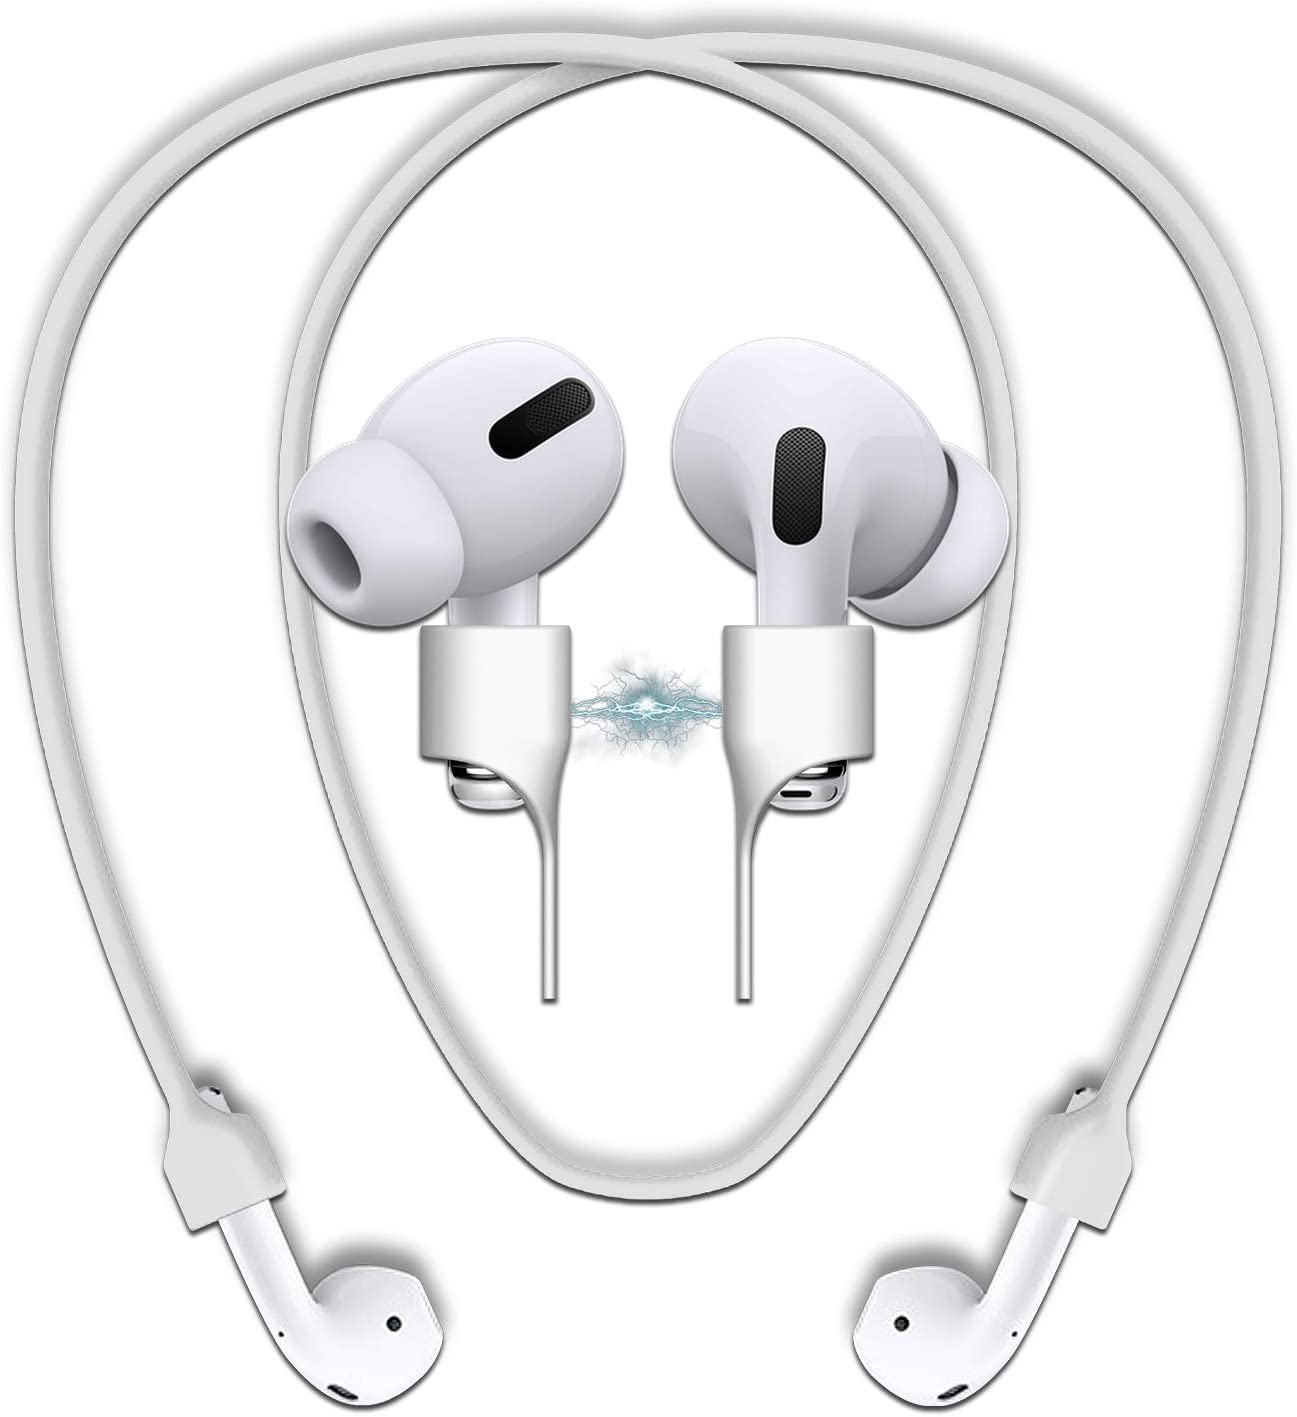 cobcobb Airpods Strap Magnetic Cord Anti-Lost Leash Sports String Accessories for Airpods Pro/2/1 (White)